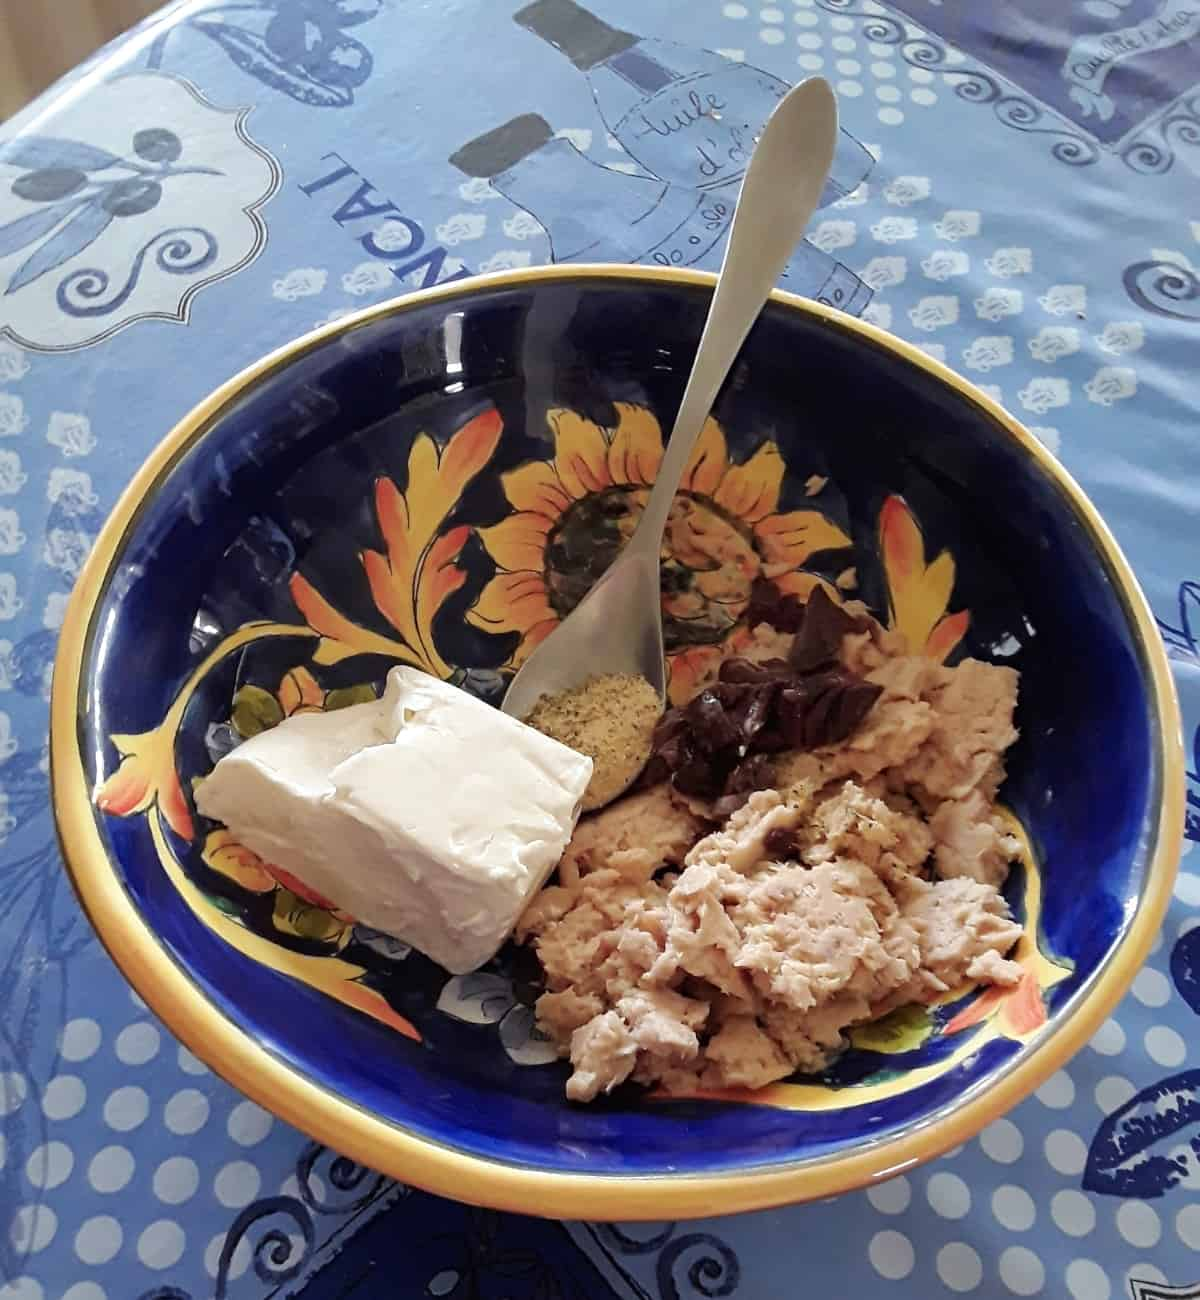 Cream cheese, tuna, olives and seasoning in blue mixing bowl with spoon.